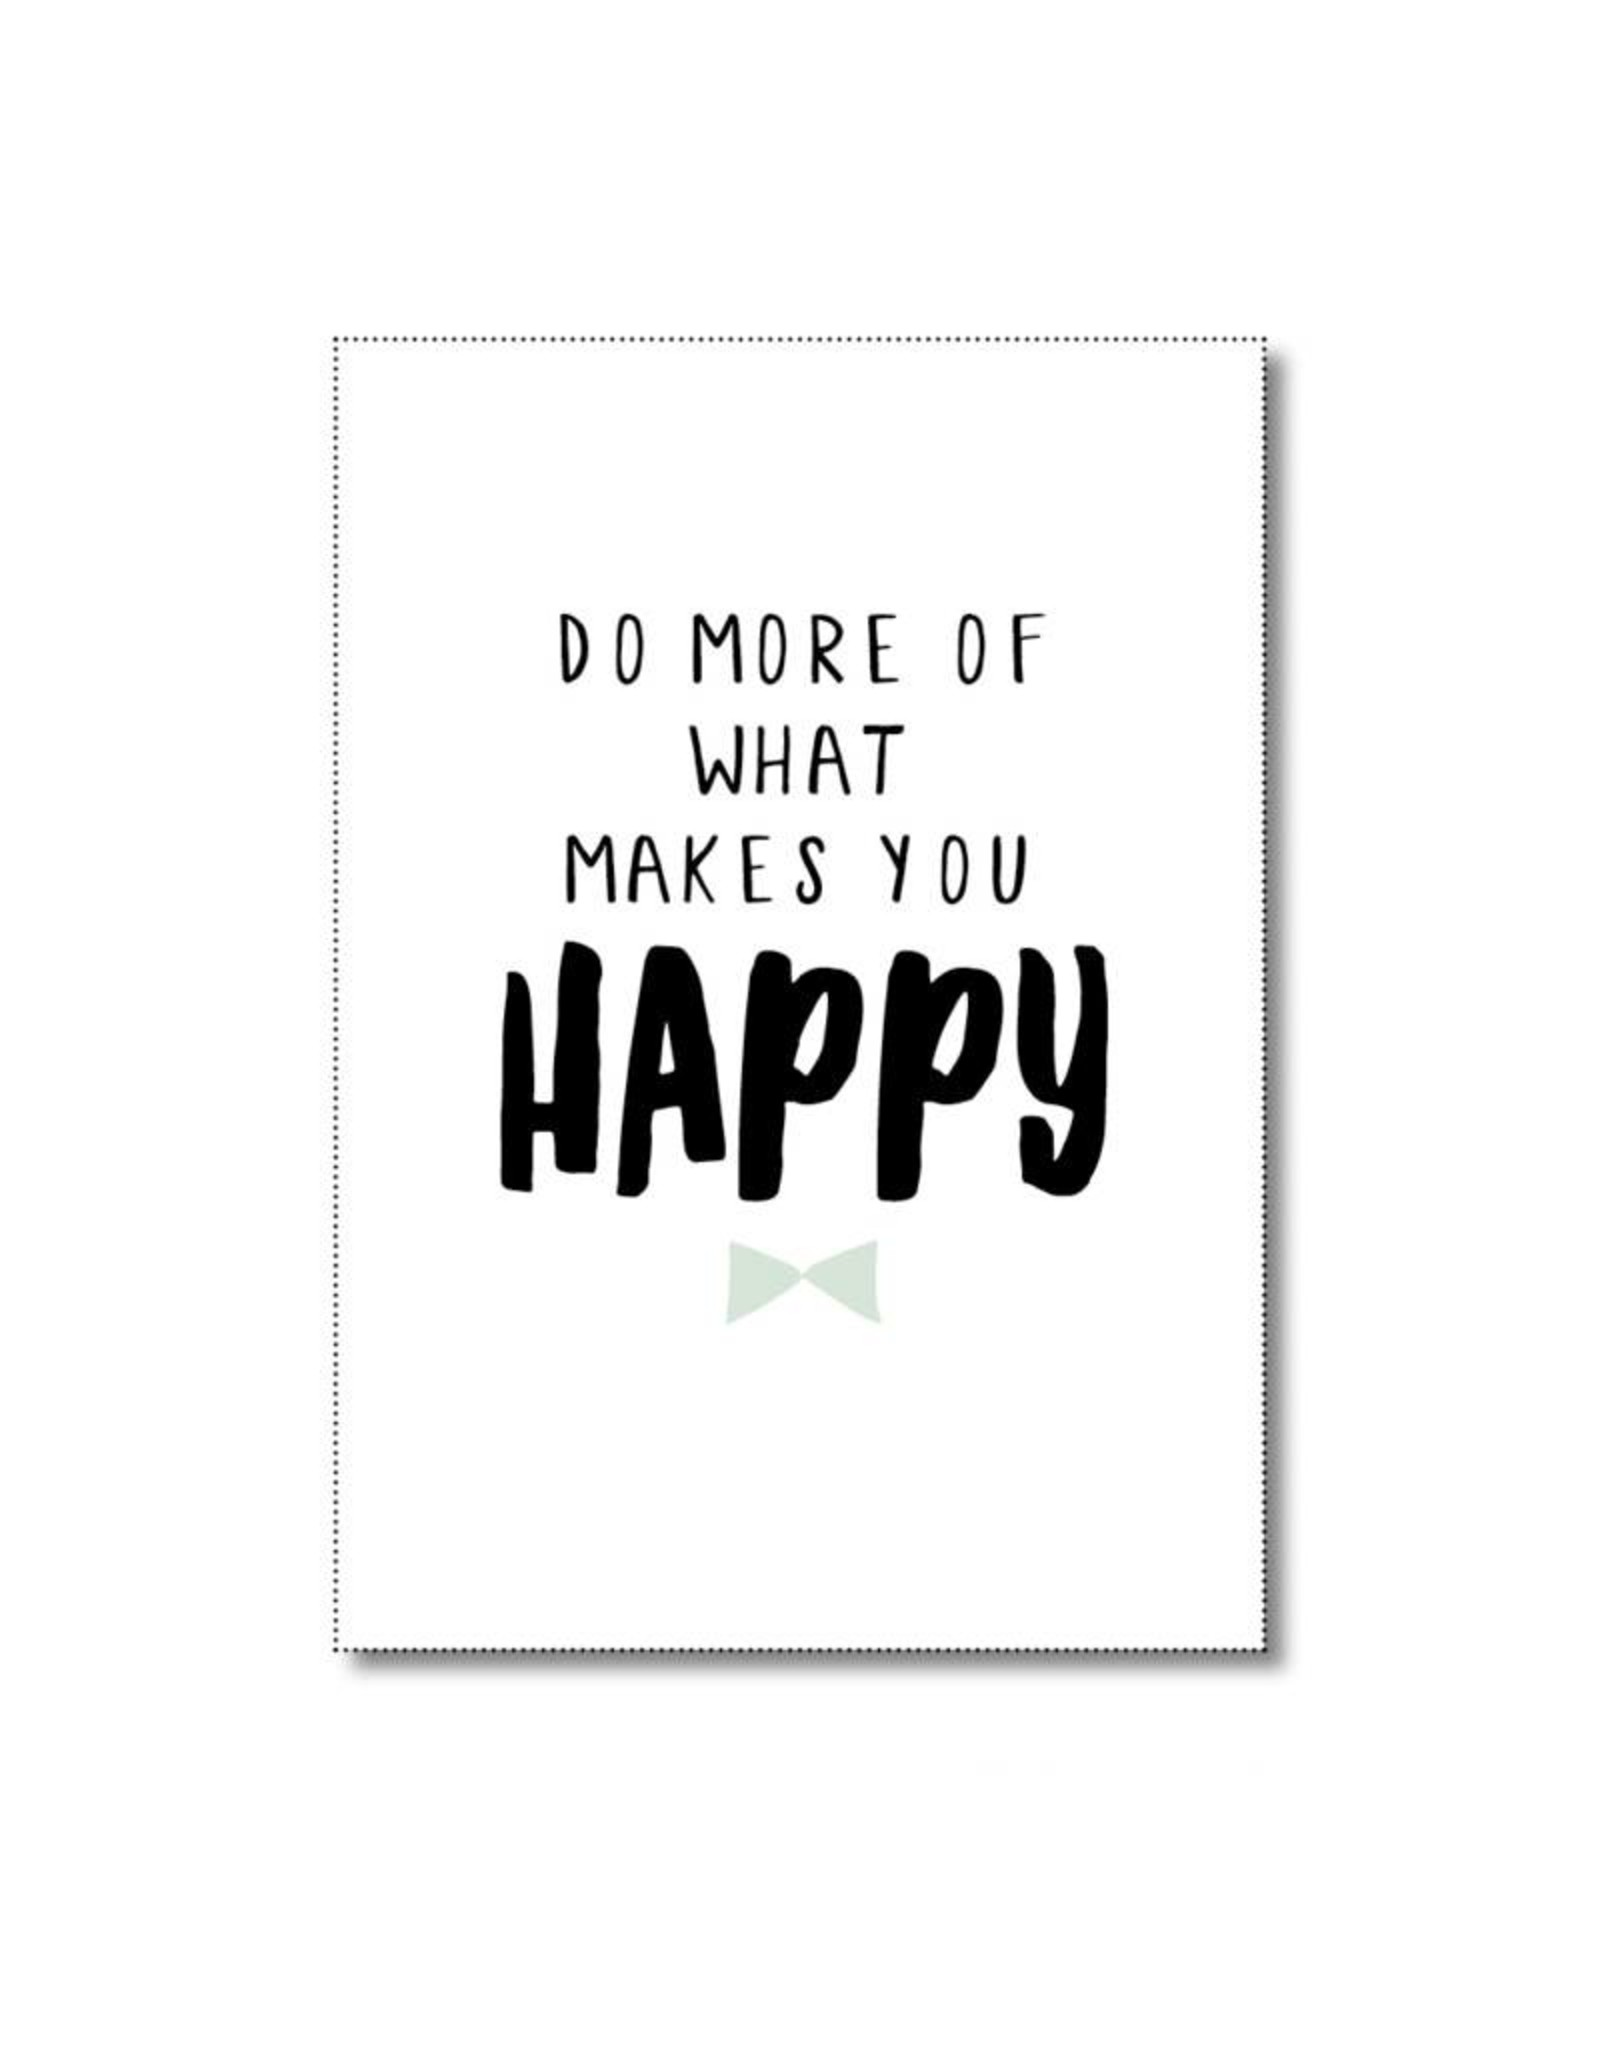 Postkaart Do more of what makes you happy